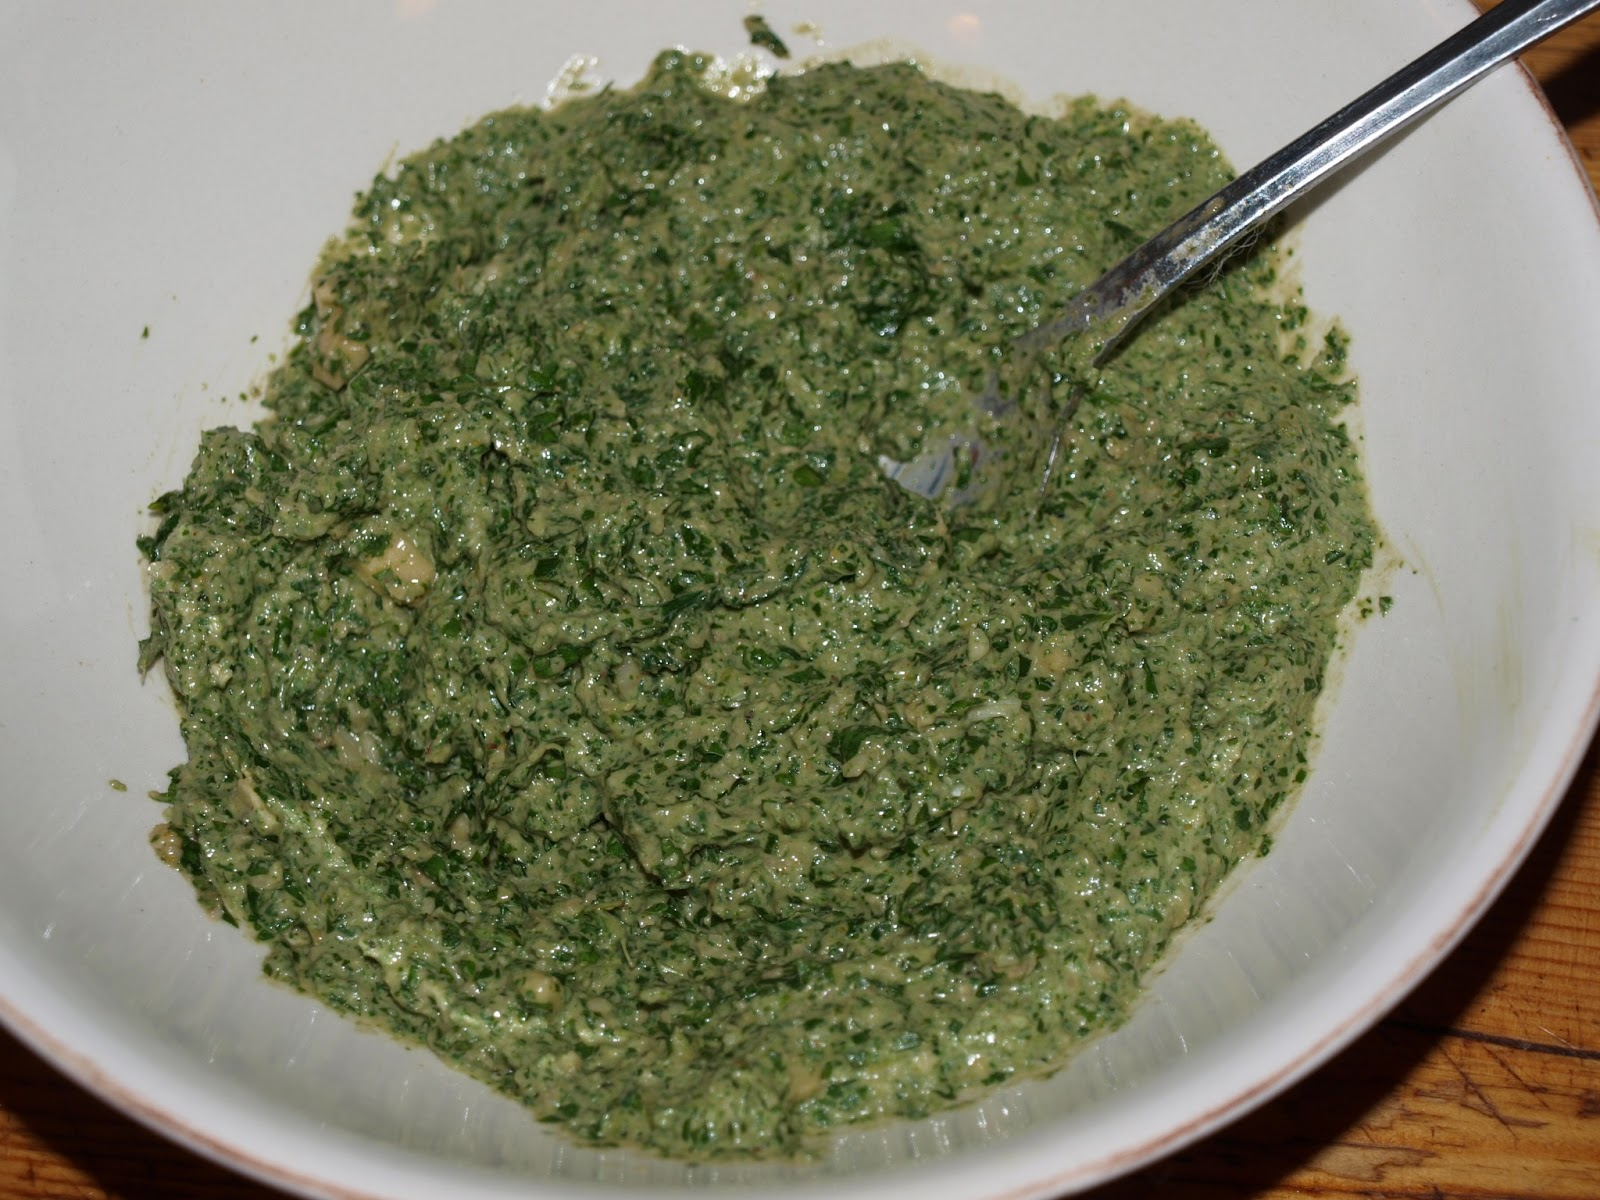 Katerina's Journal: Fantastic Dandelion Pesto